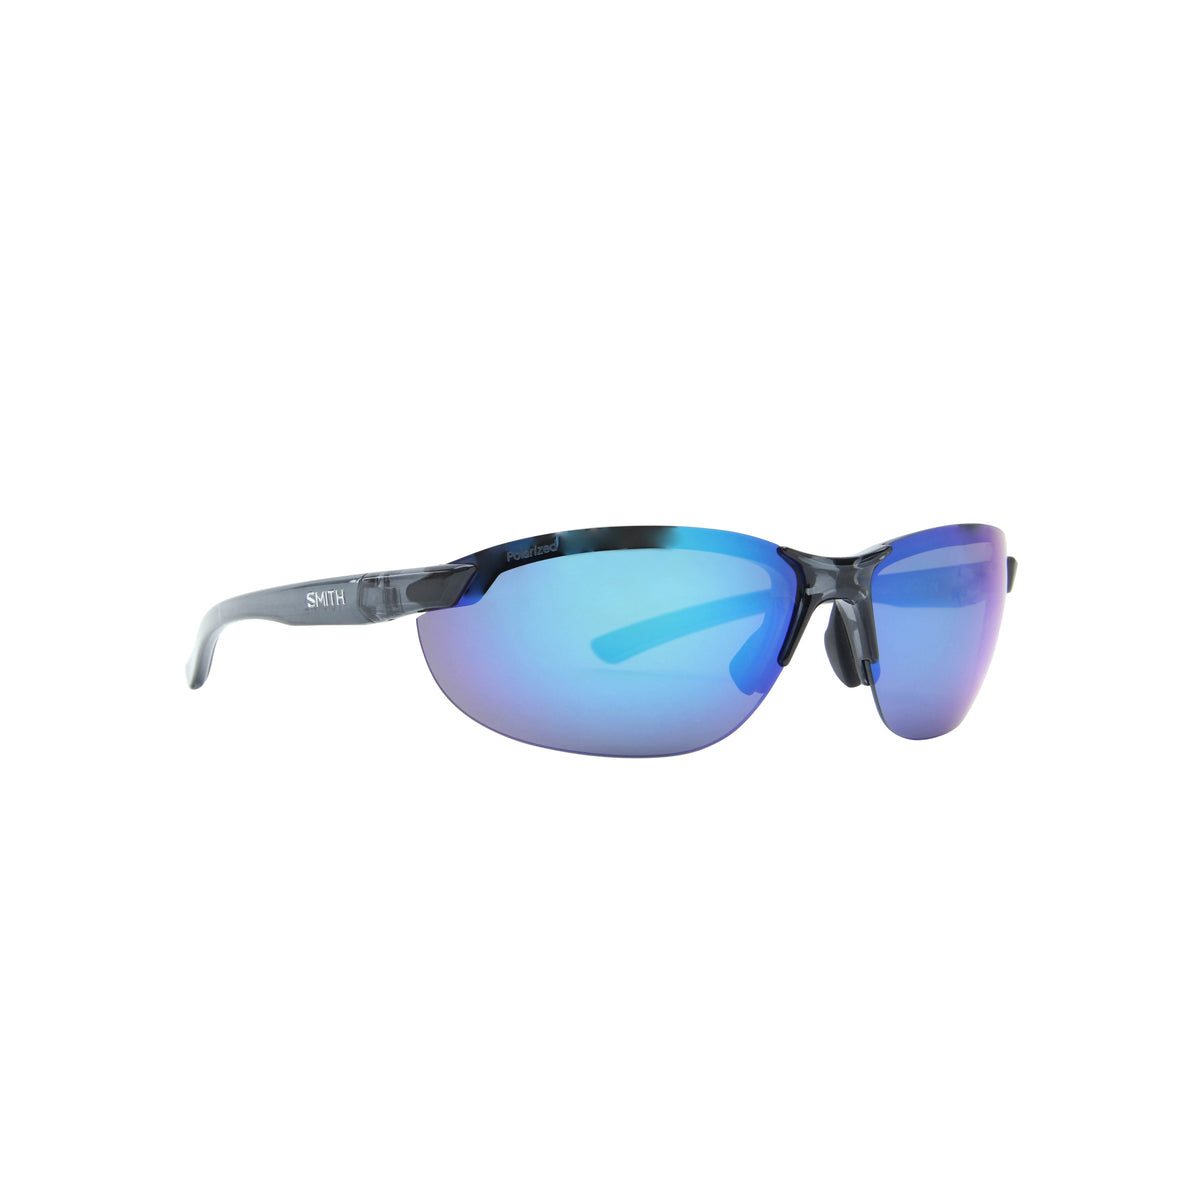 Smith - Parallel 2 Crystal Mediterranean/Polarized Blue Mirror Oval Unisex Sunglasses - 40mm